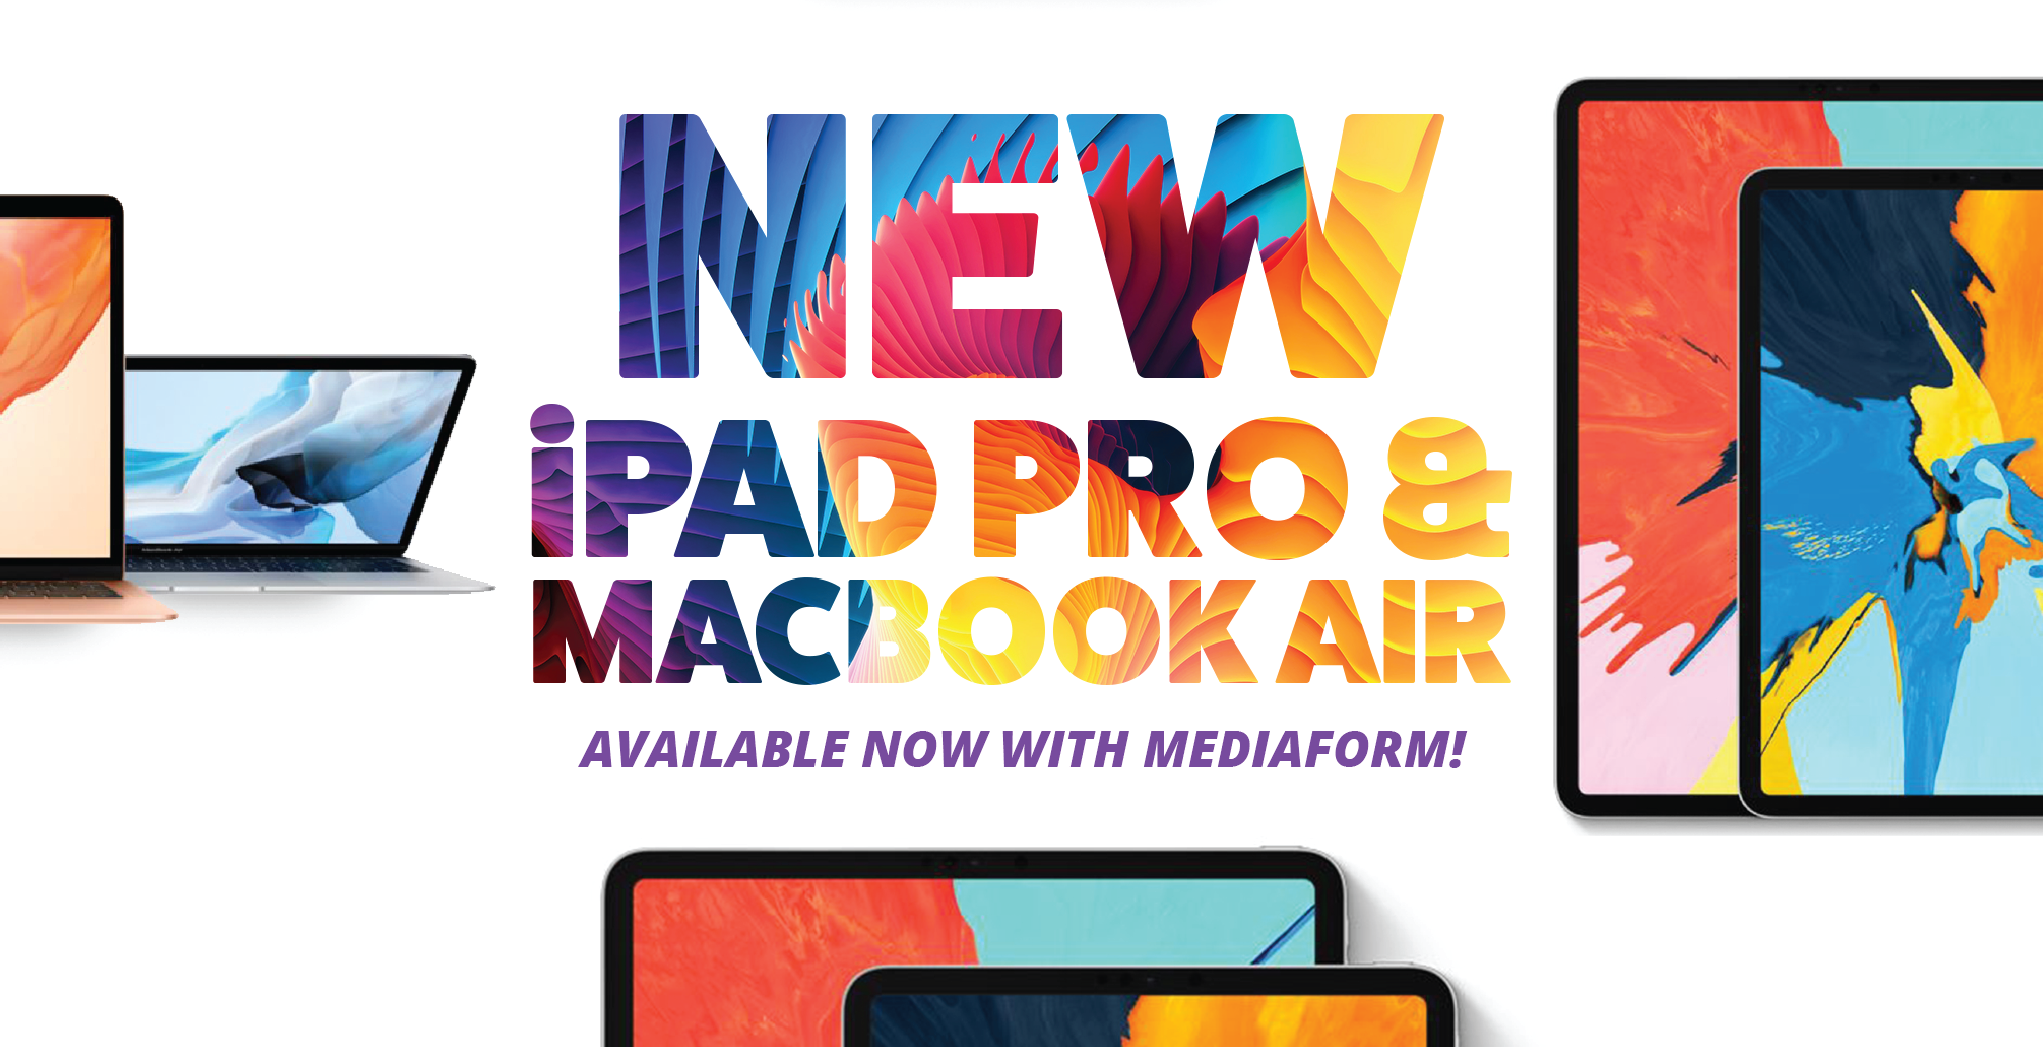 New Apple iPad Pro & MacBook Air - Now Available